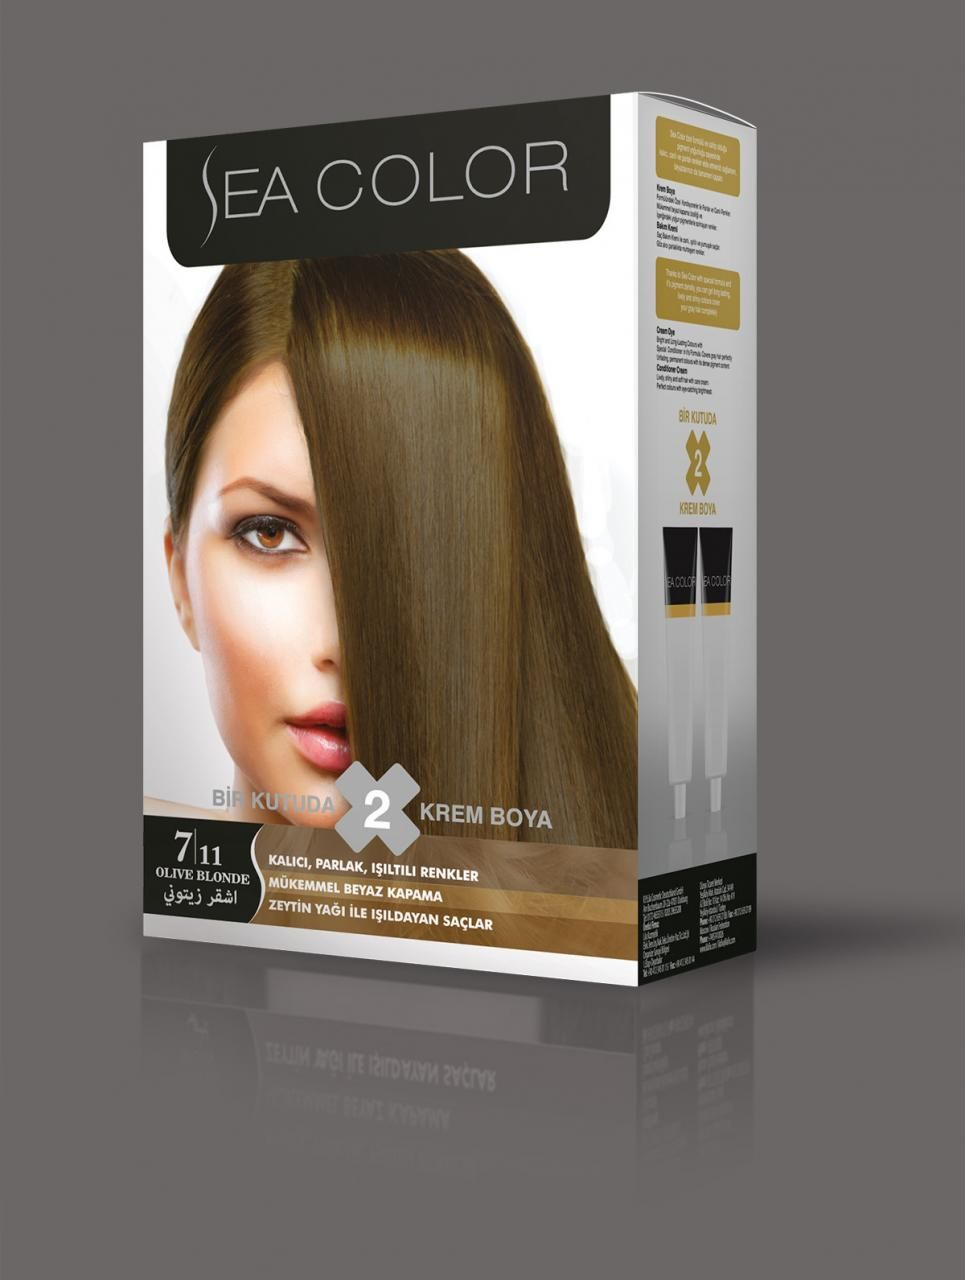 Pin By Currie Rainer On لون شعر بني Color Olive Blonde